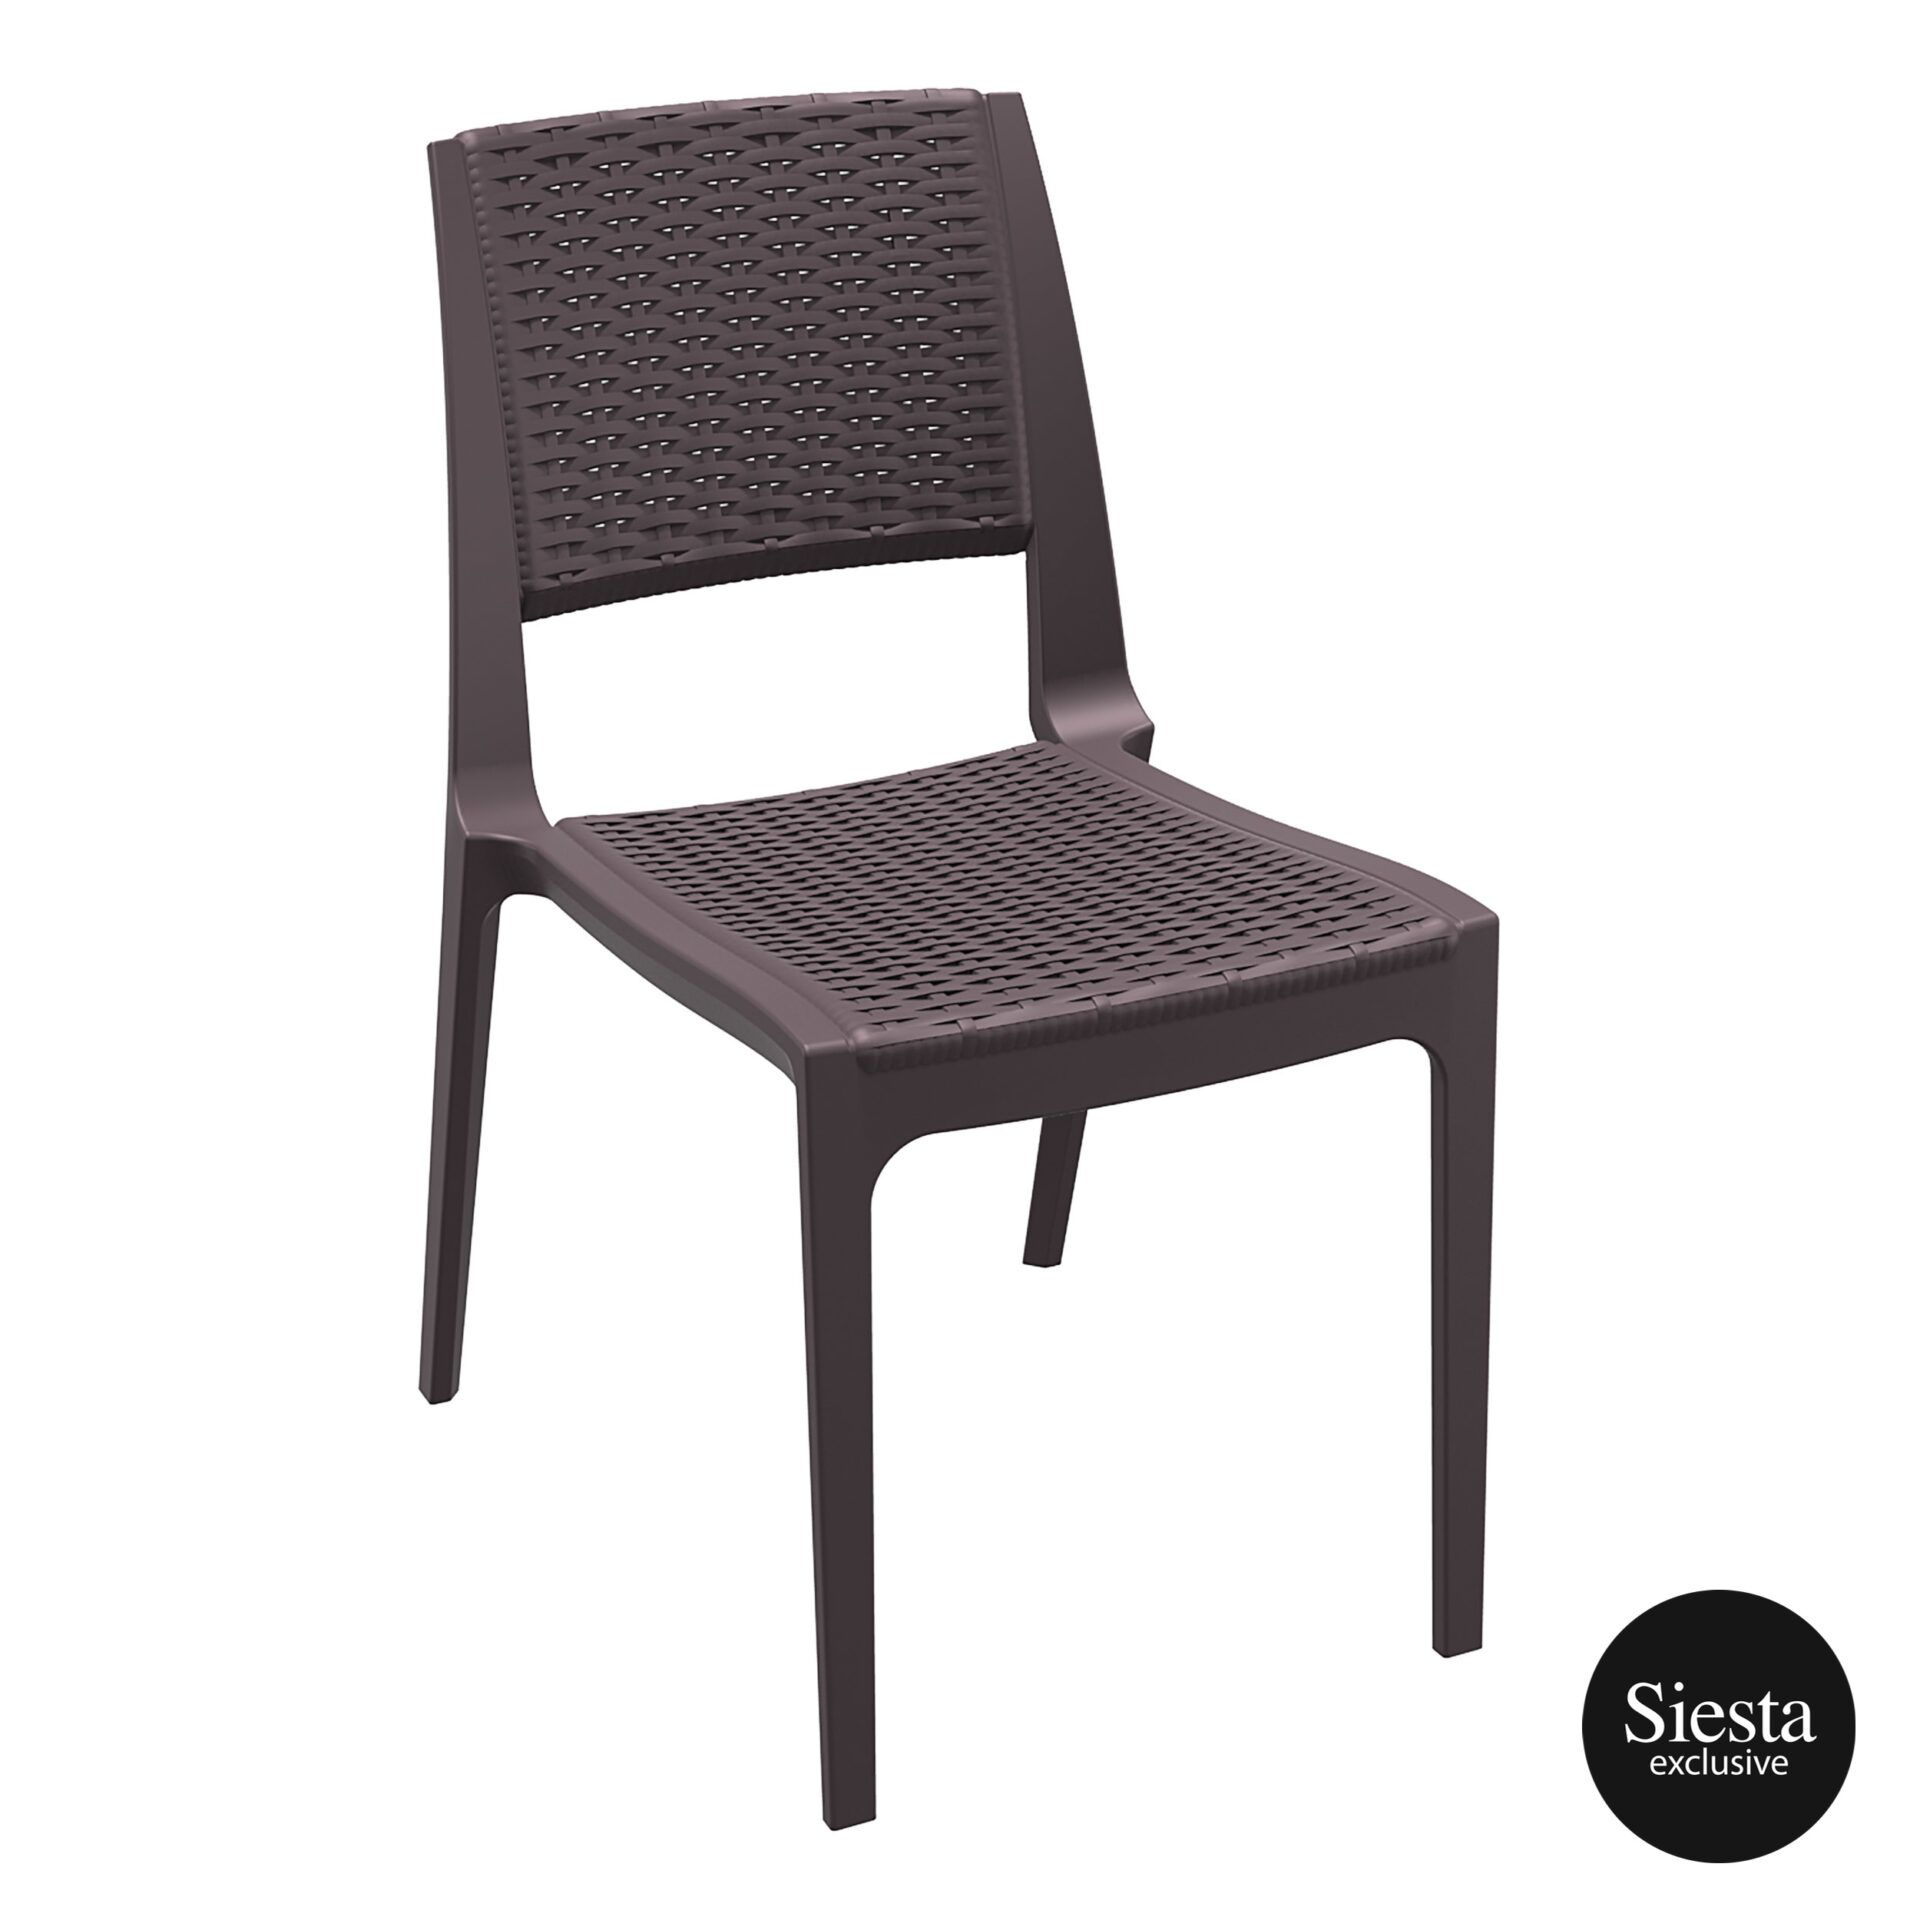 resin rattan outdoor cafe verona chair brown front side 1